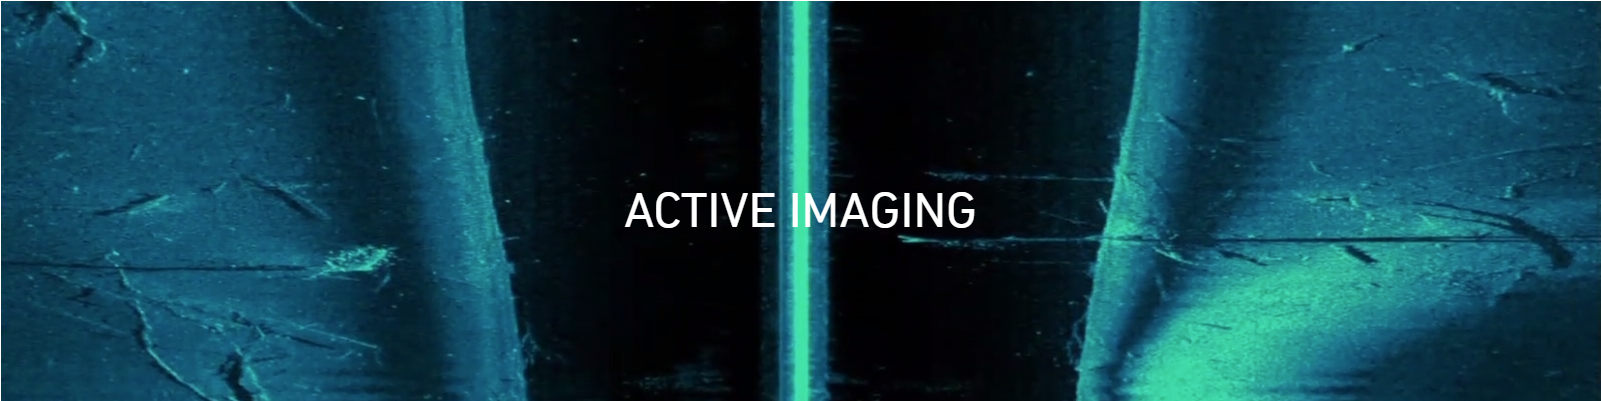 Elite-FS-Active-Imaging